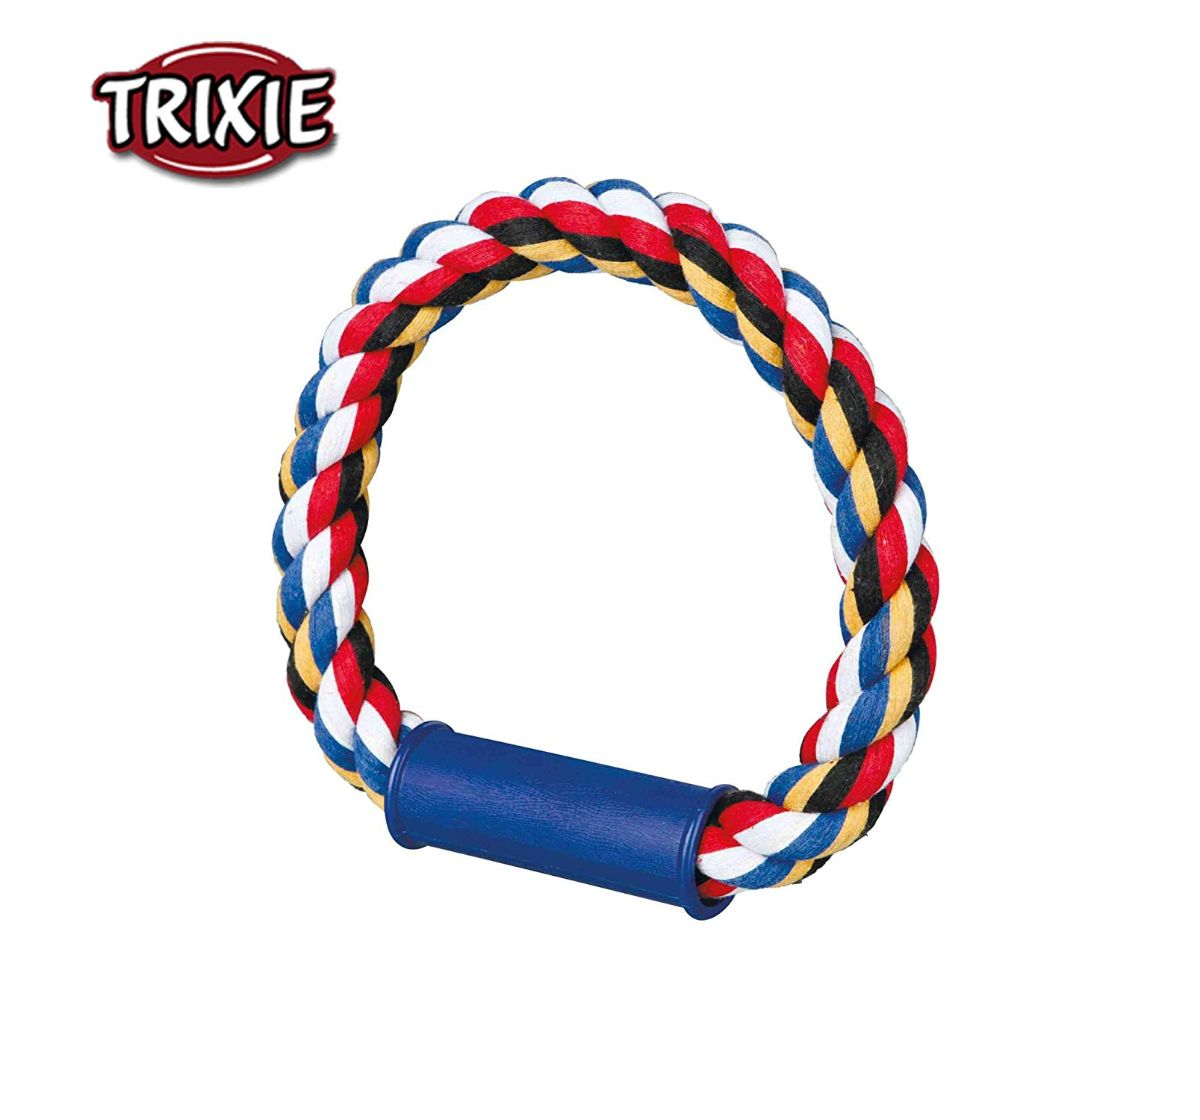 Trixie Tugger Round with Plastic Handle